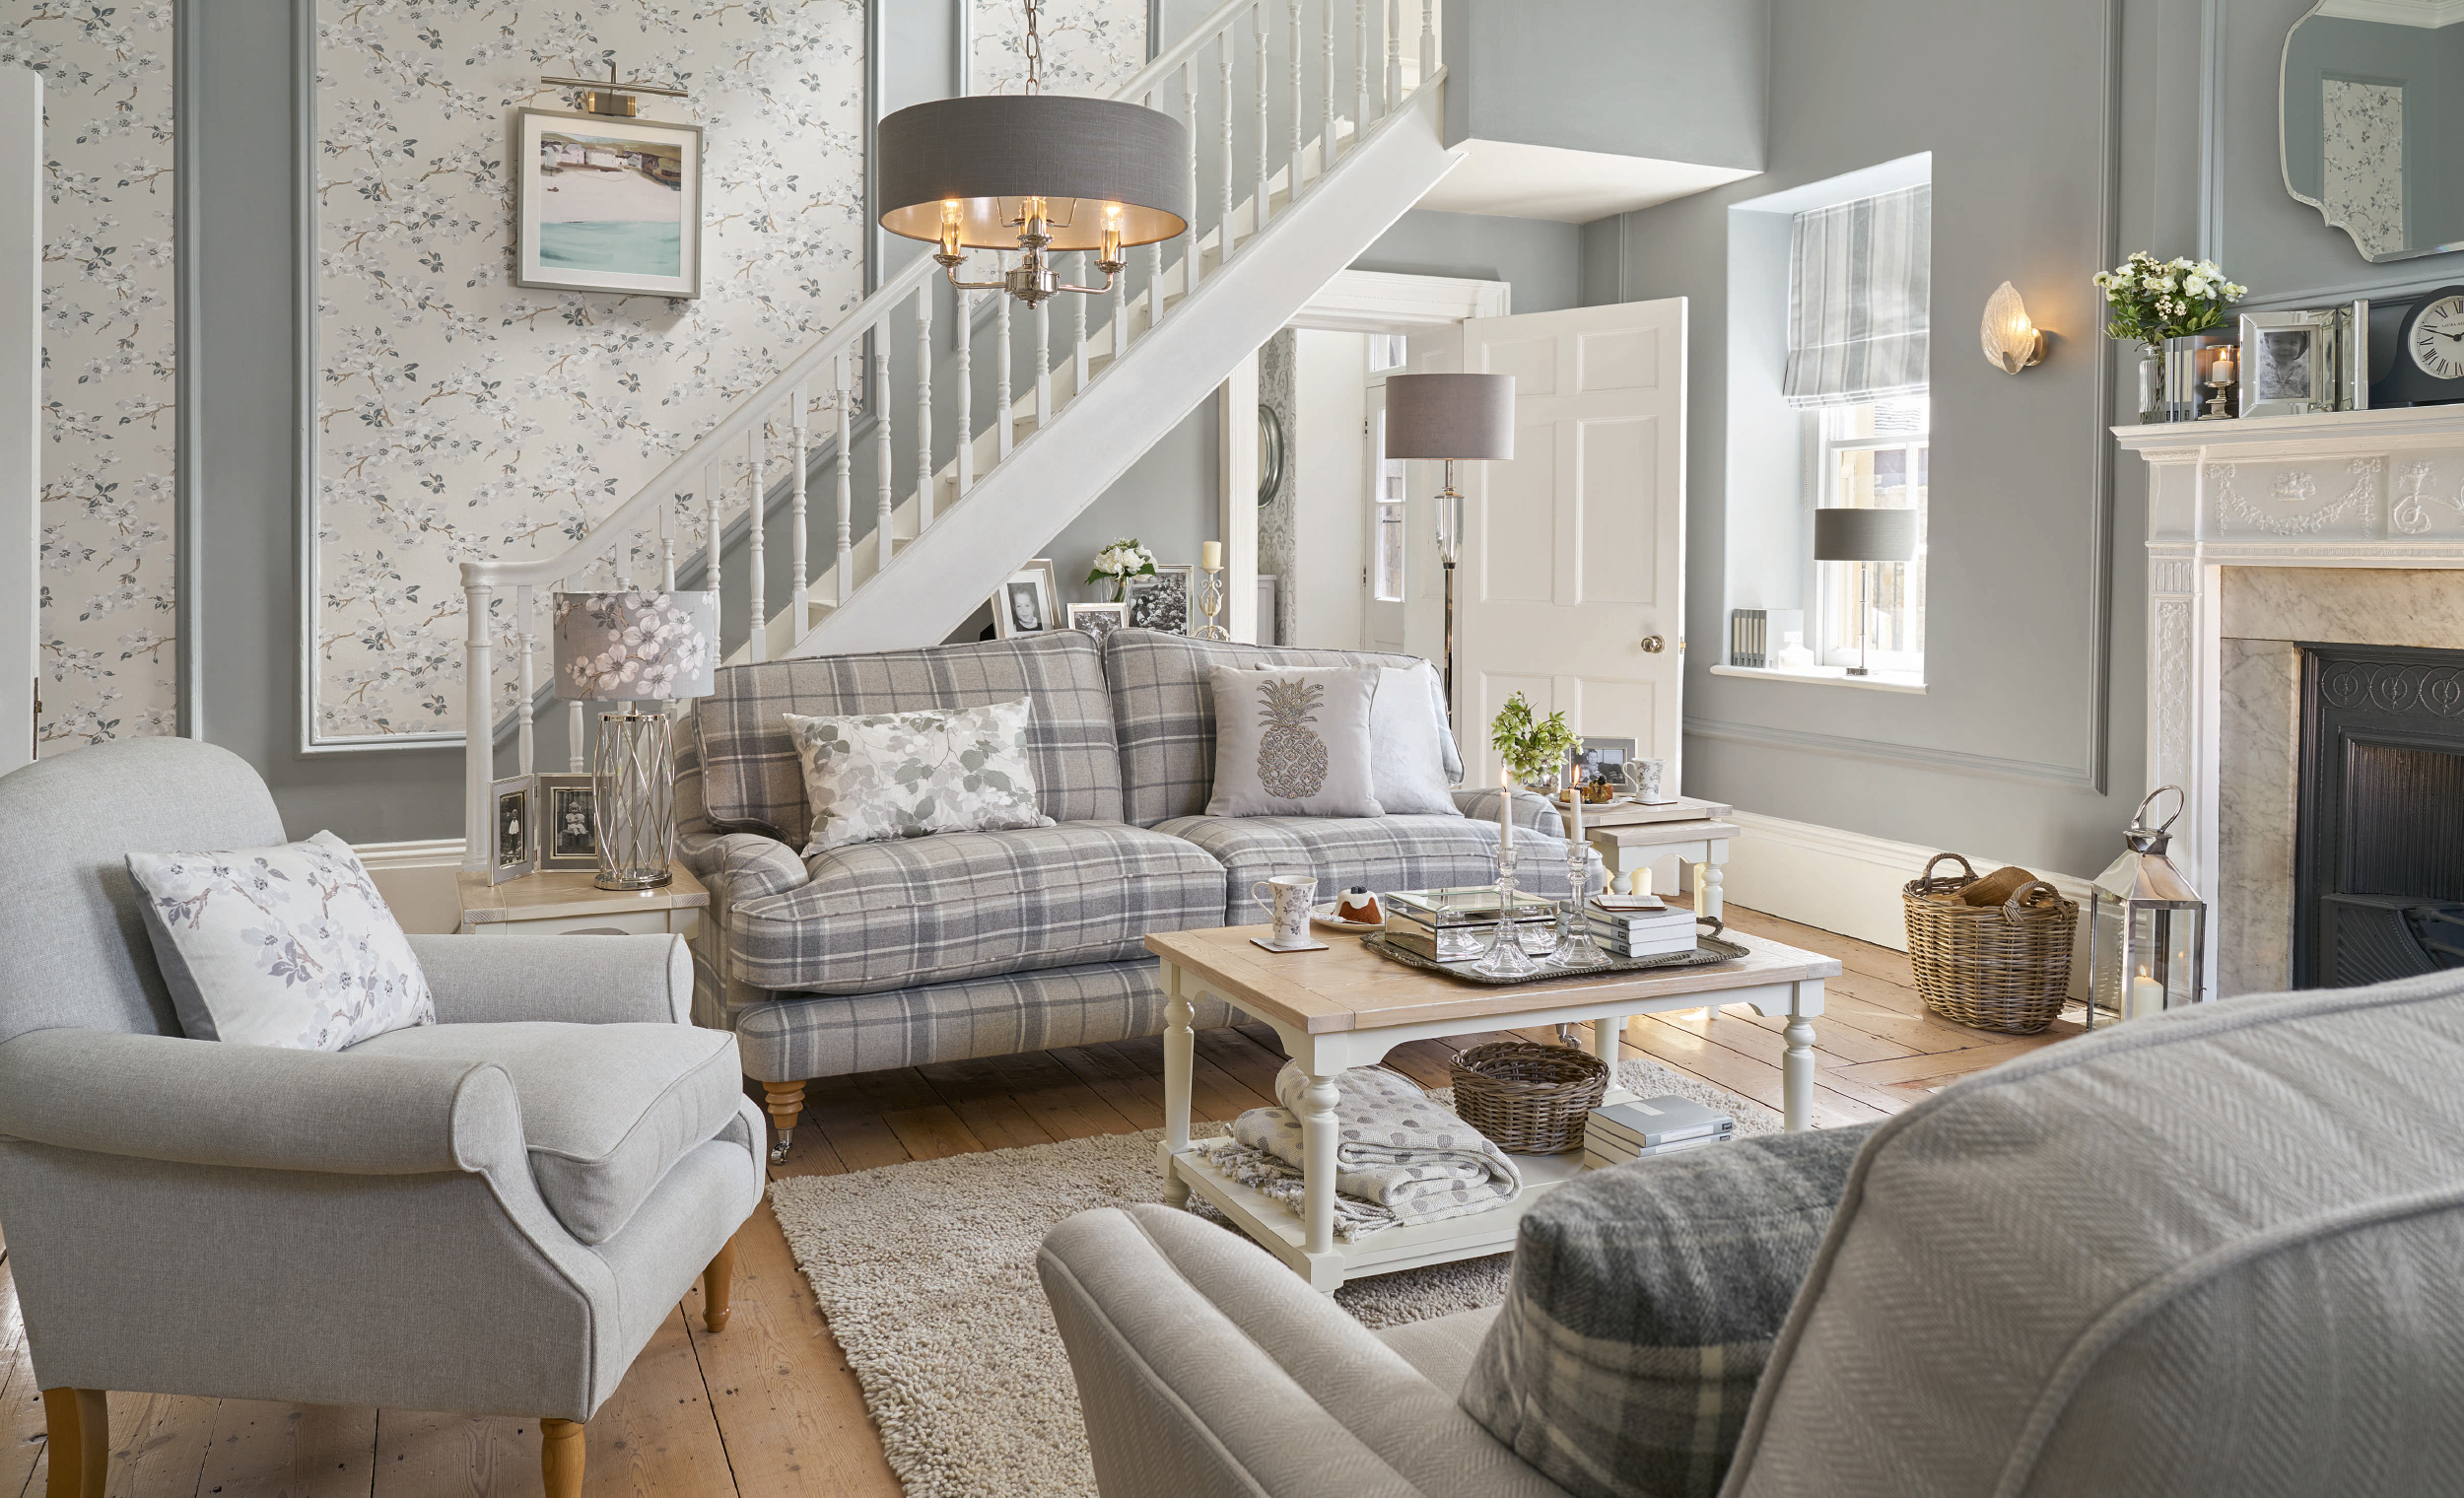 Decorating a small home might seem like a bit of a challenge at first. Laura Ashley Living Room Ideas